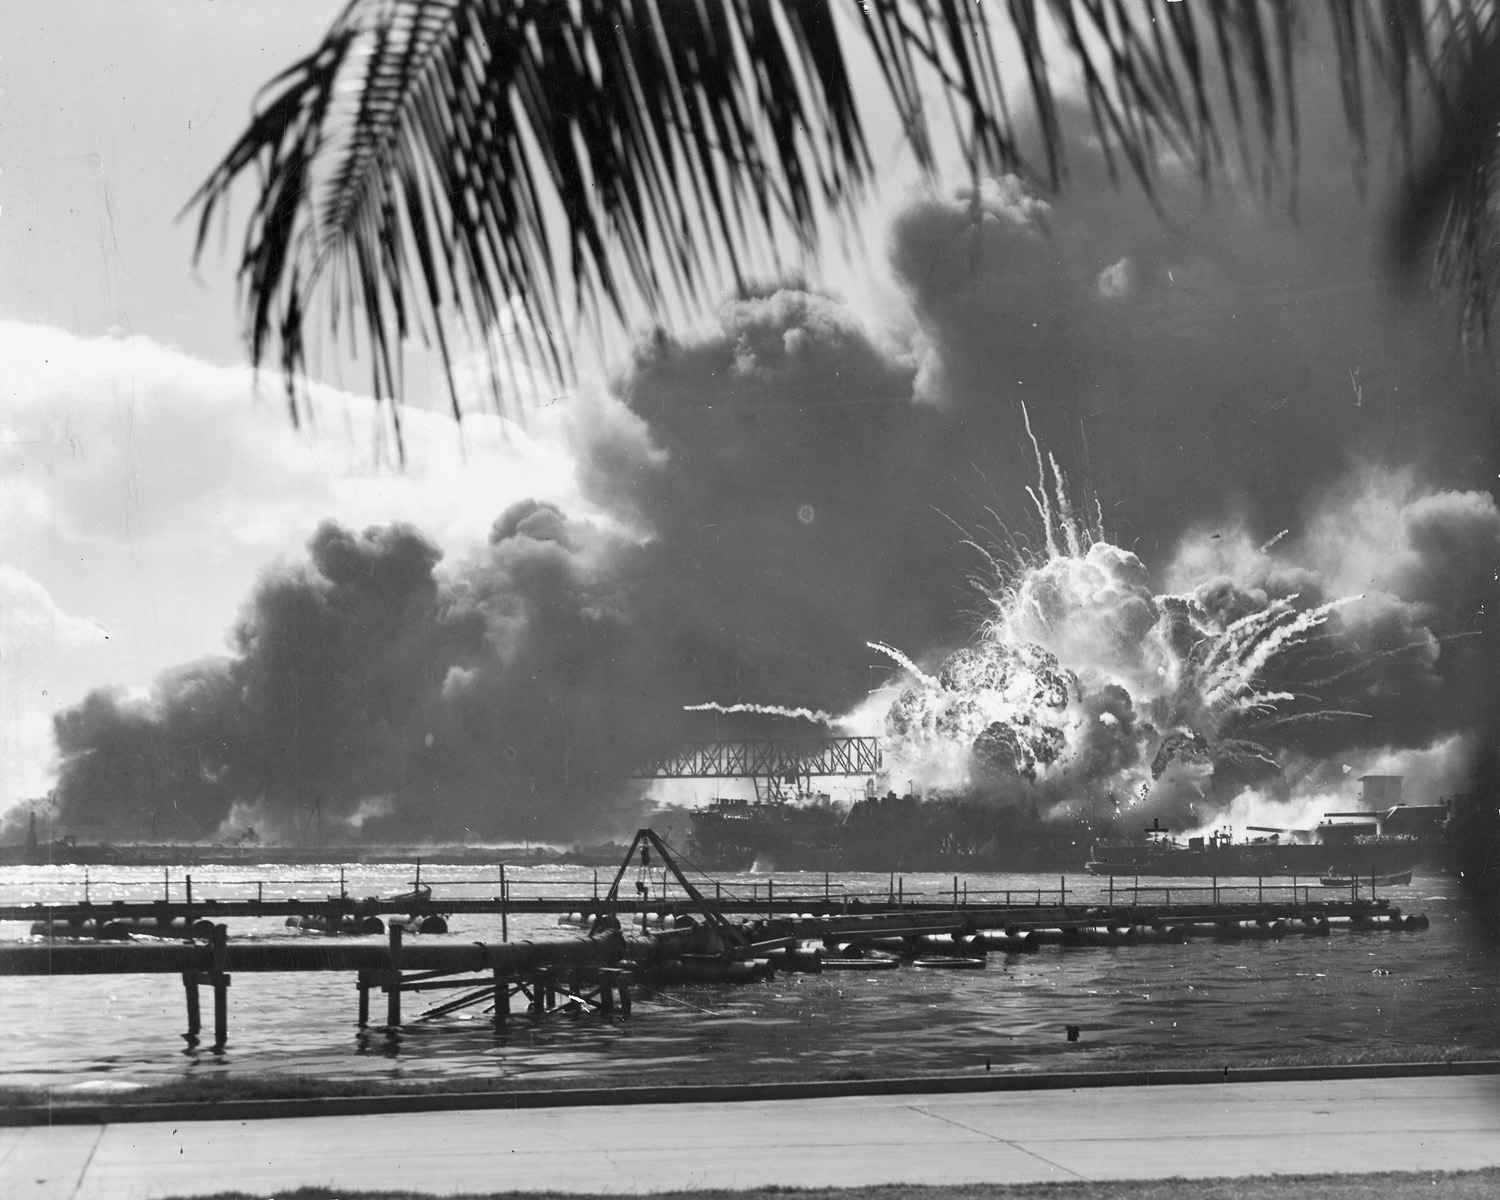 An unknown navy photographer snapped this photograph of the Japanese attack on Pearl Harbor in Hawaii on December 7, 1941, just as the USS Shaw exploded.(Wikimedia Commons)